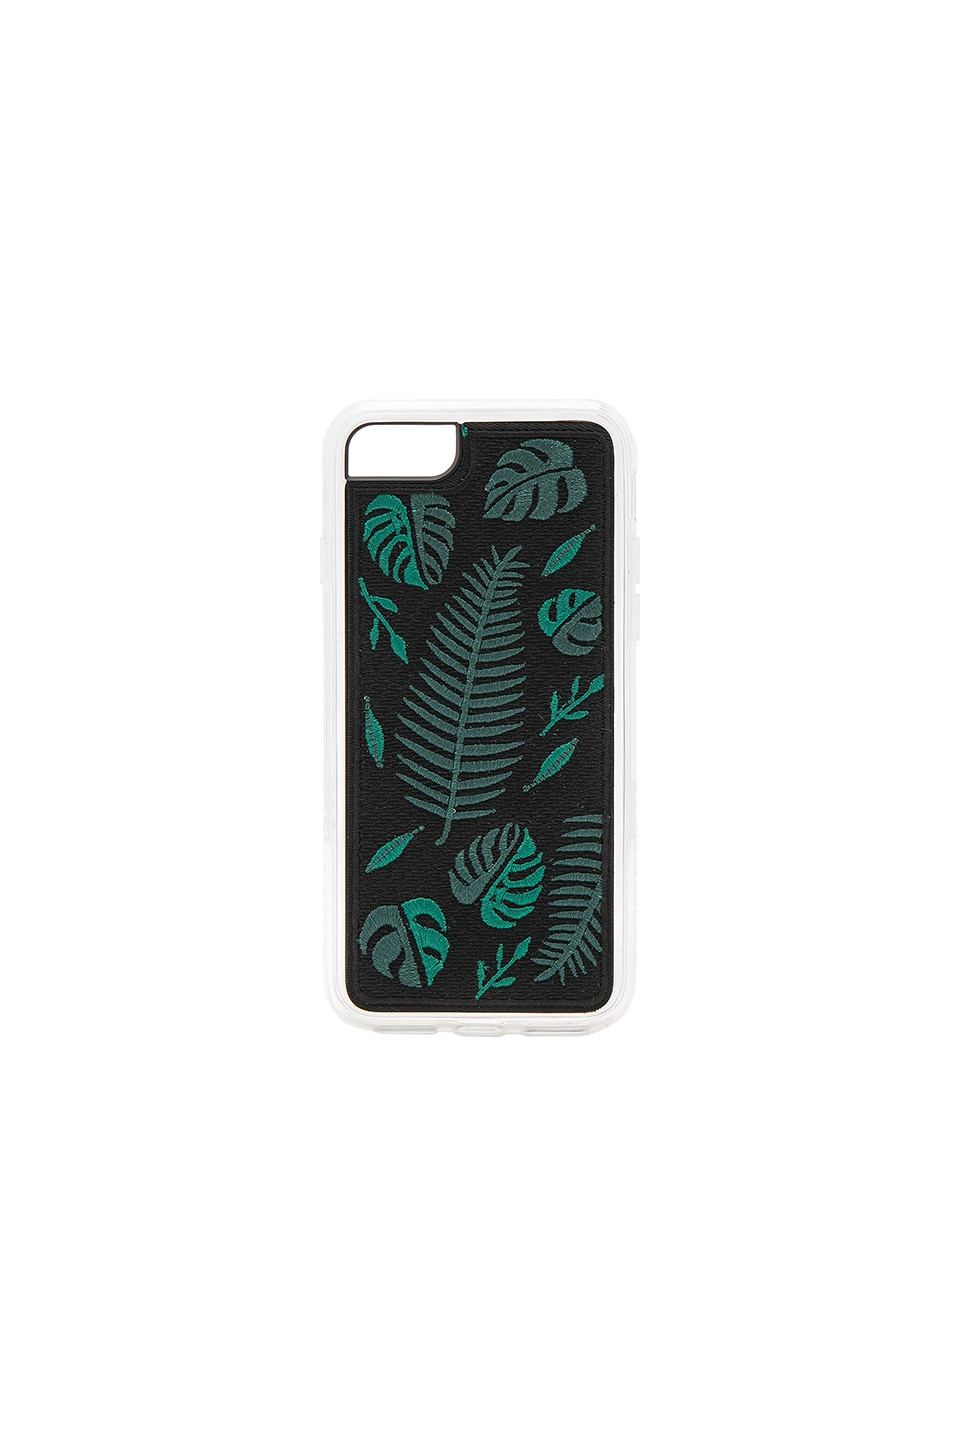 Fern Embroidered iPhone 6/7 Case by Zero Gravity